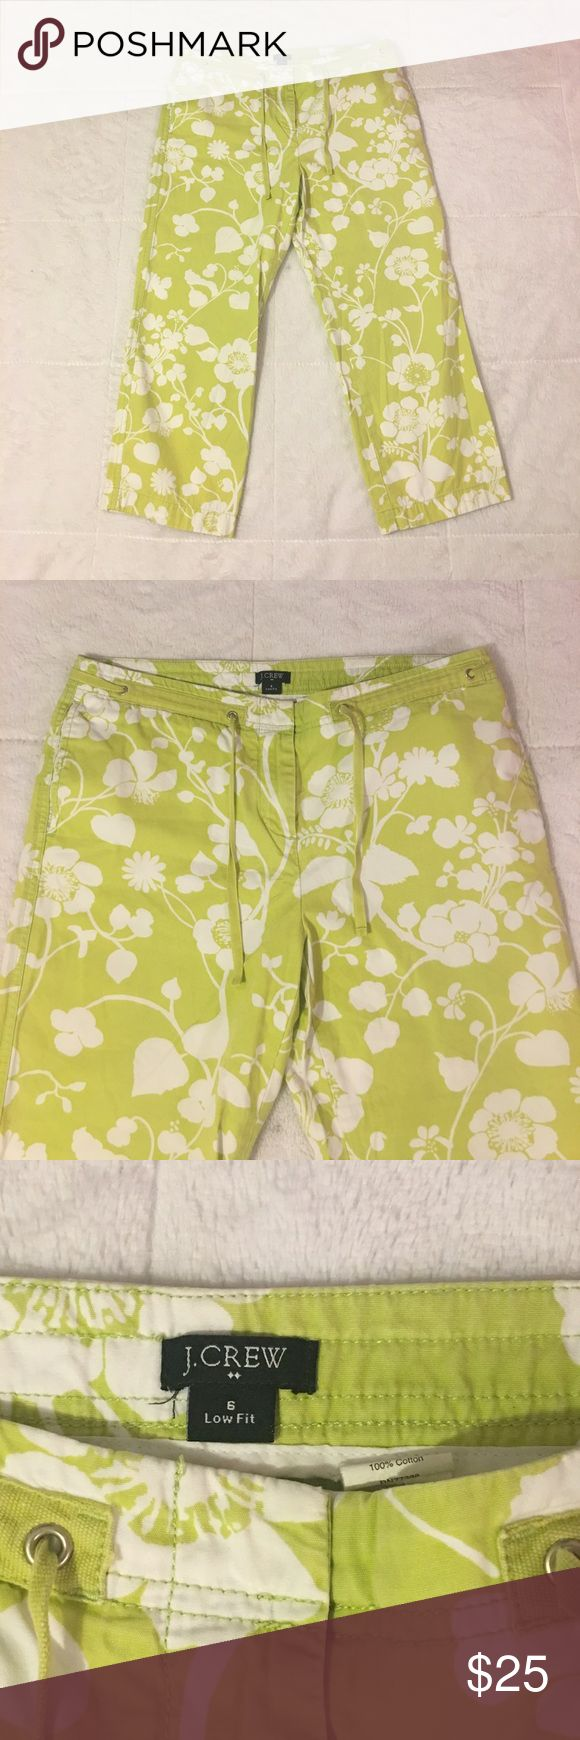 J. Crew Low Fit Floral Summer Pants Women's Size 6 J. Crew Low Fit Floral Summer Pants. Women's Size 6. Small Spot On Left Leg. Overall God Pre Owned Condition. J. Crew Pants